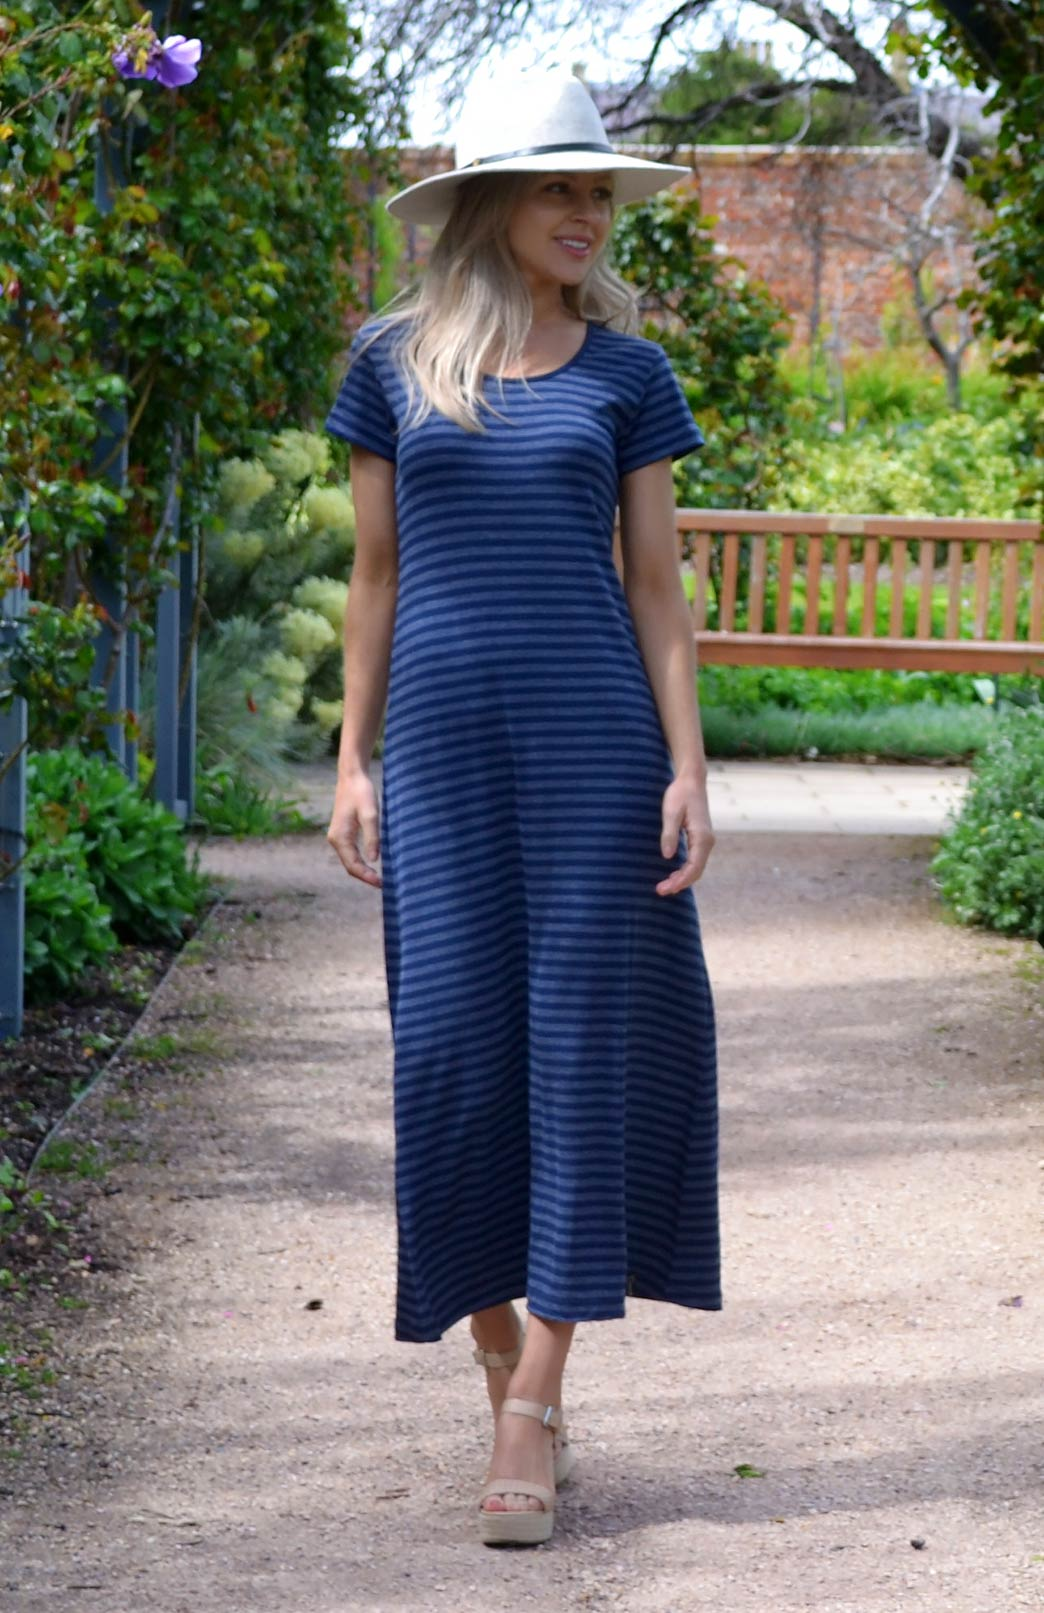 T-Shirt Maxi Dress - Women's Indigo Blue Stripe Merino Wool Modal Blend T-Shirt Maxi Dress - Smitten Merino Tasmania Australia